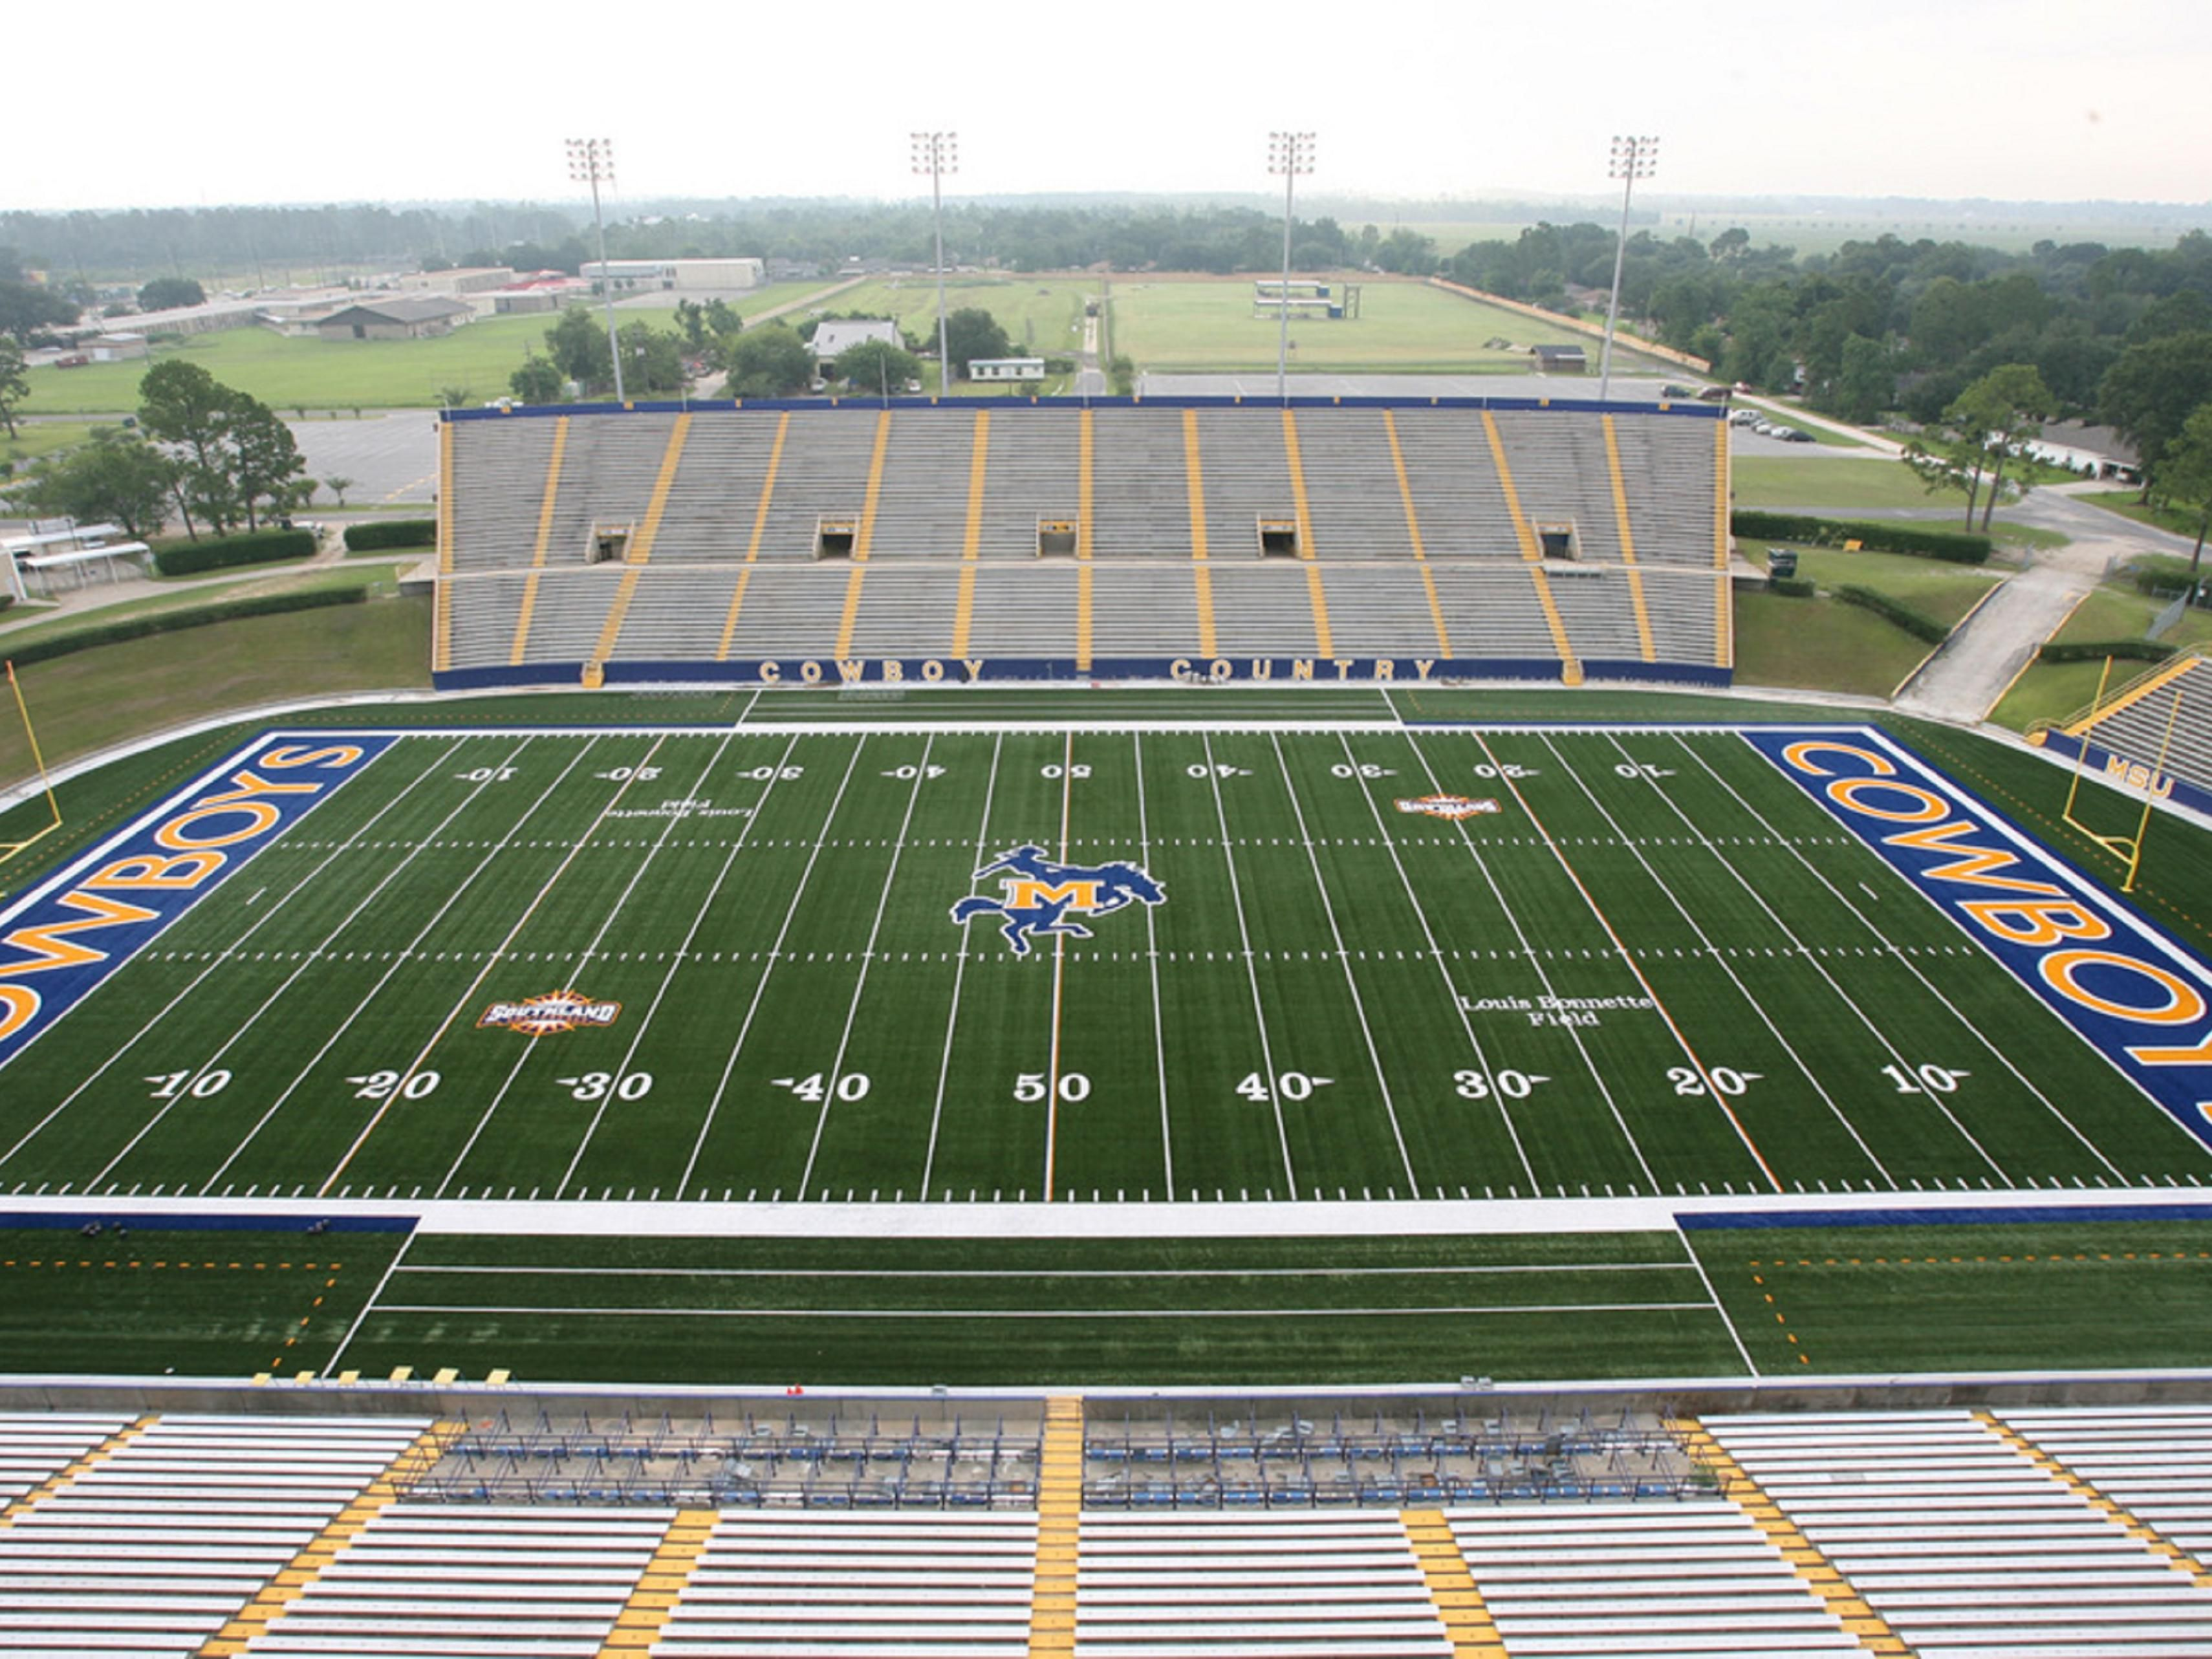 McNeese State University - Football Stadium